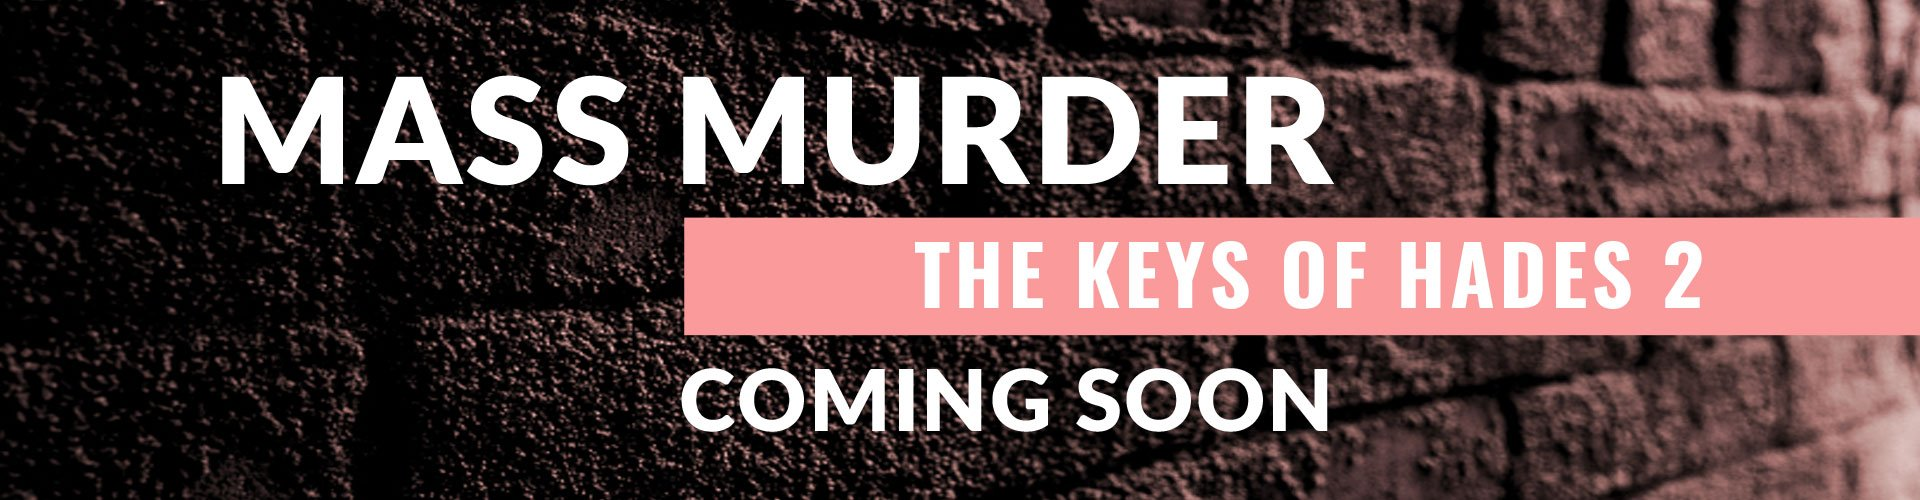 Mass Murder - The Keys of Hades 2